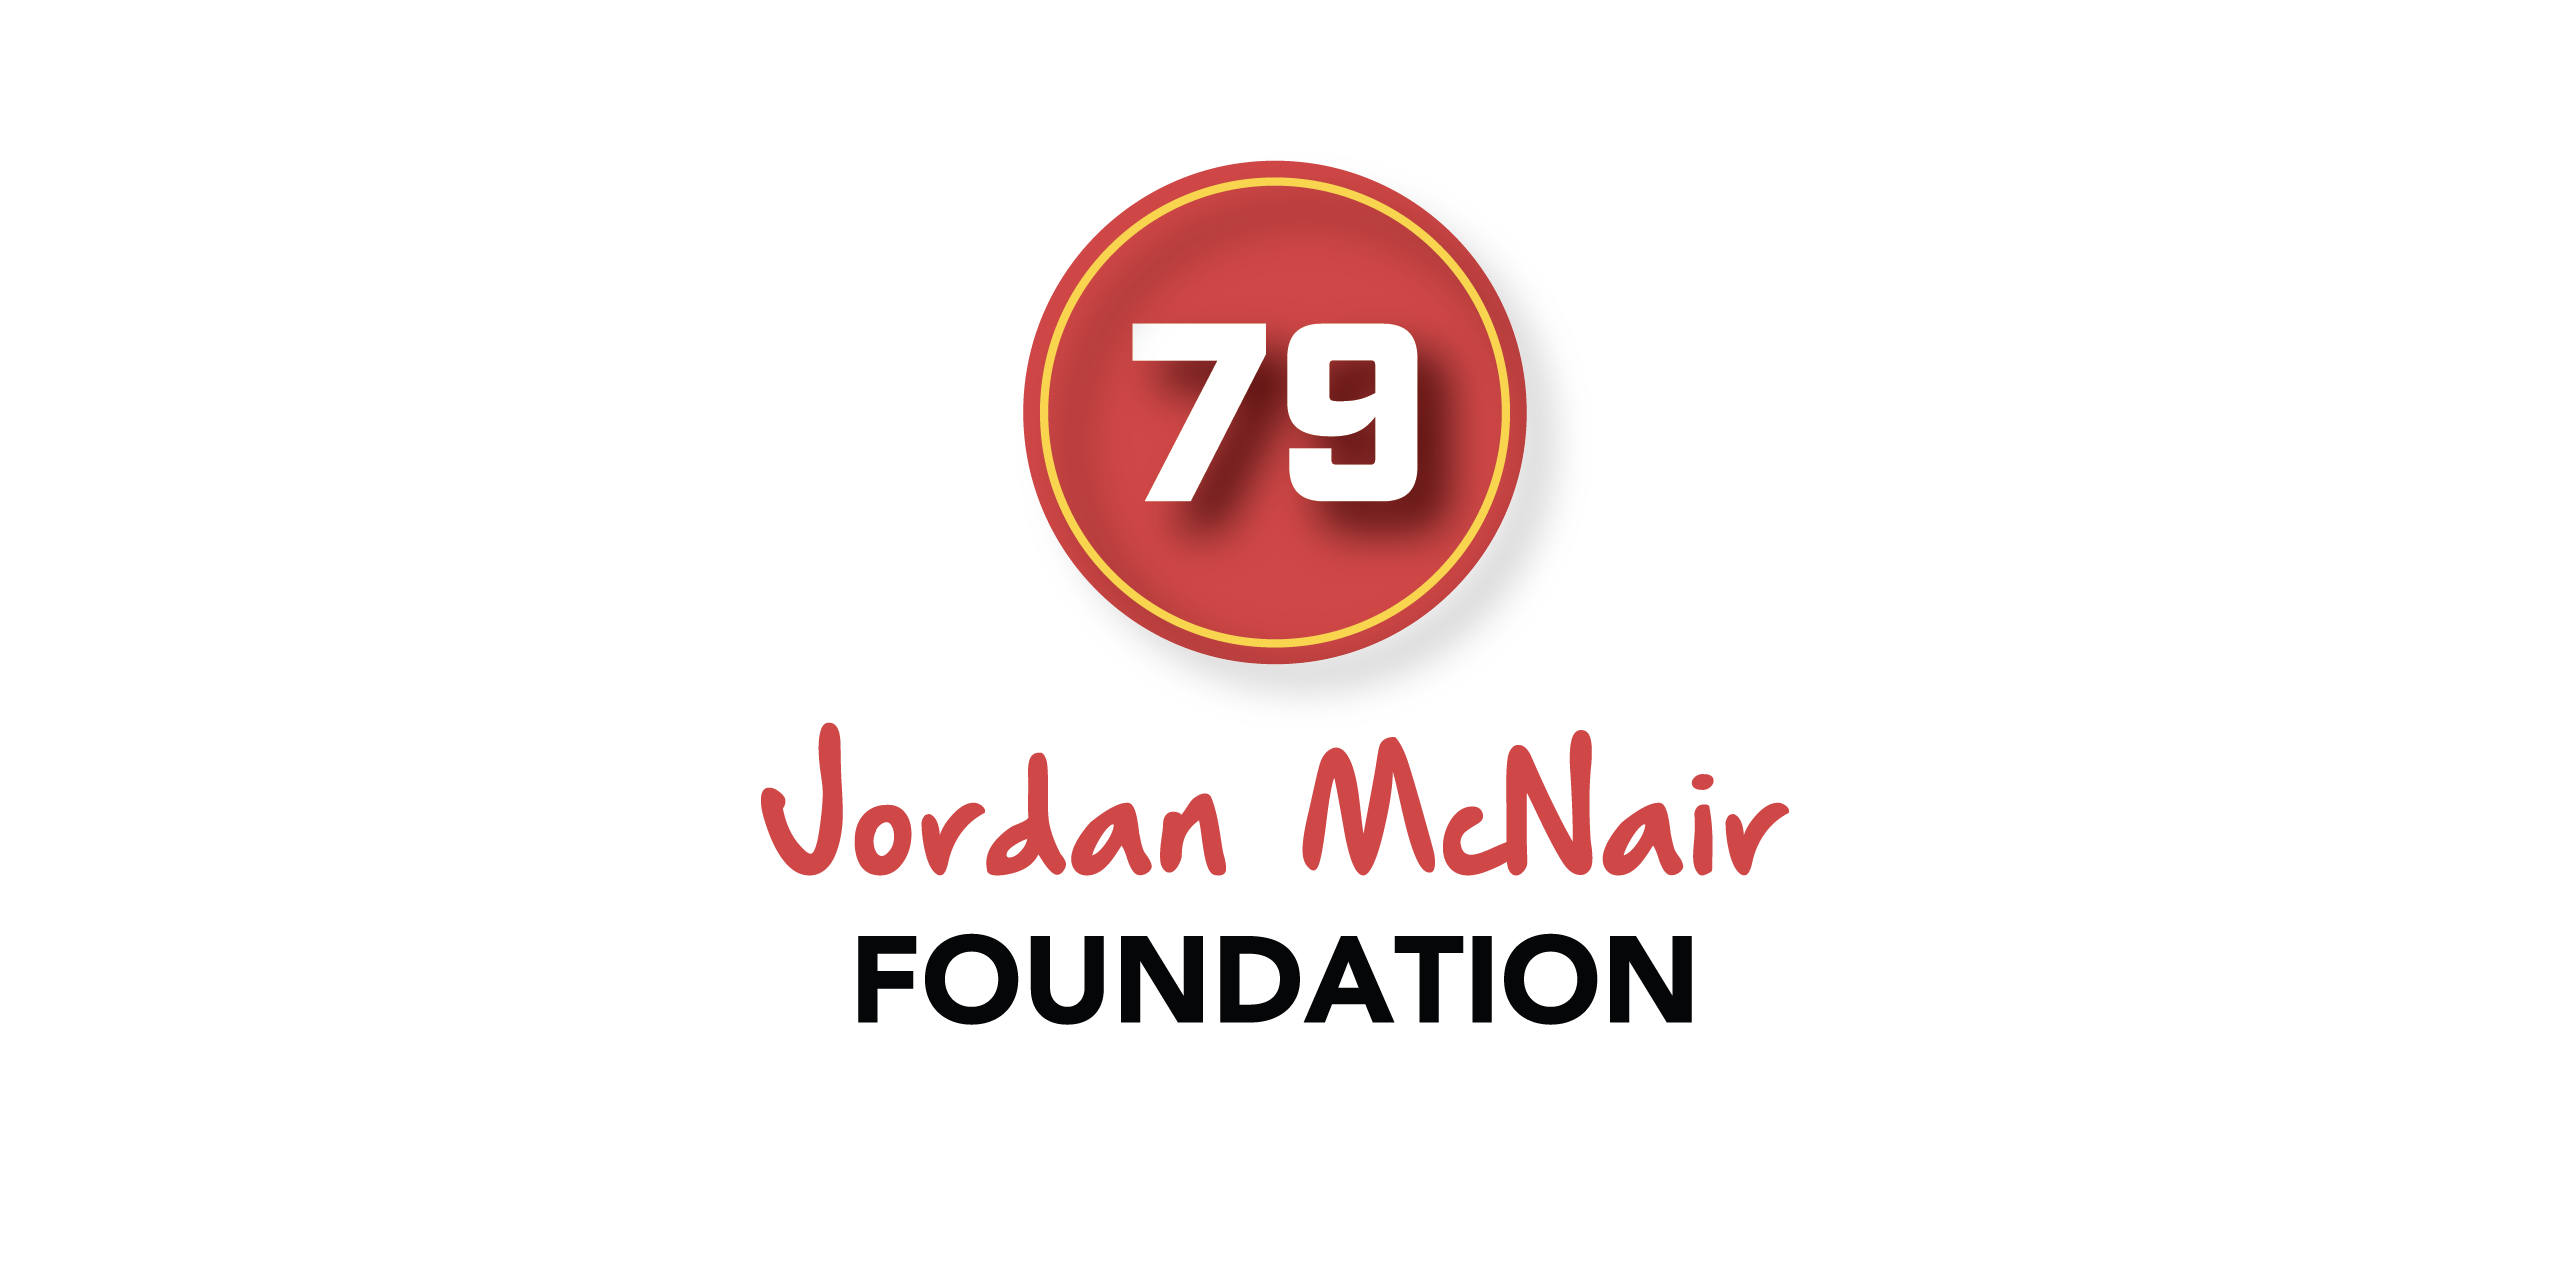 The Jordan McNair Golf Classic logo